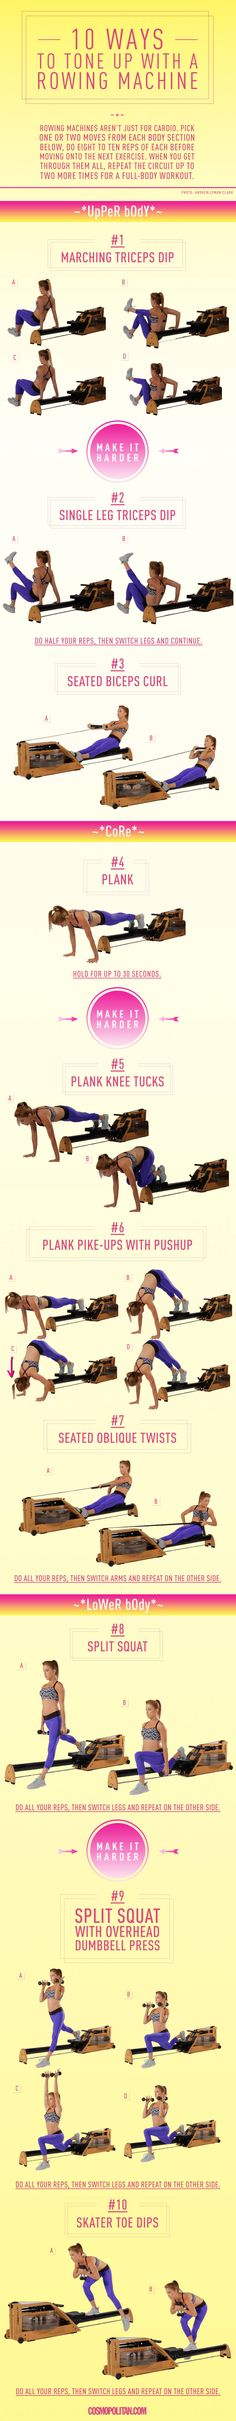 10 Bizarre but Effective Ways to Work Out With a Row Machine #fitness #workout